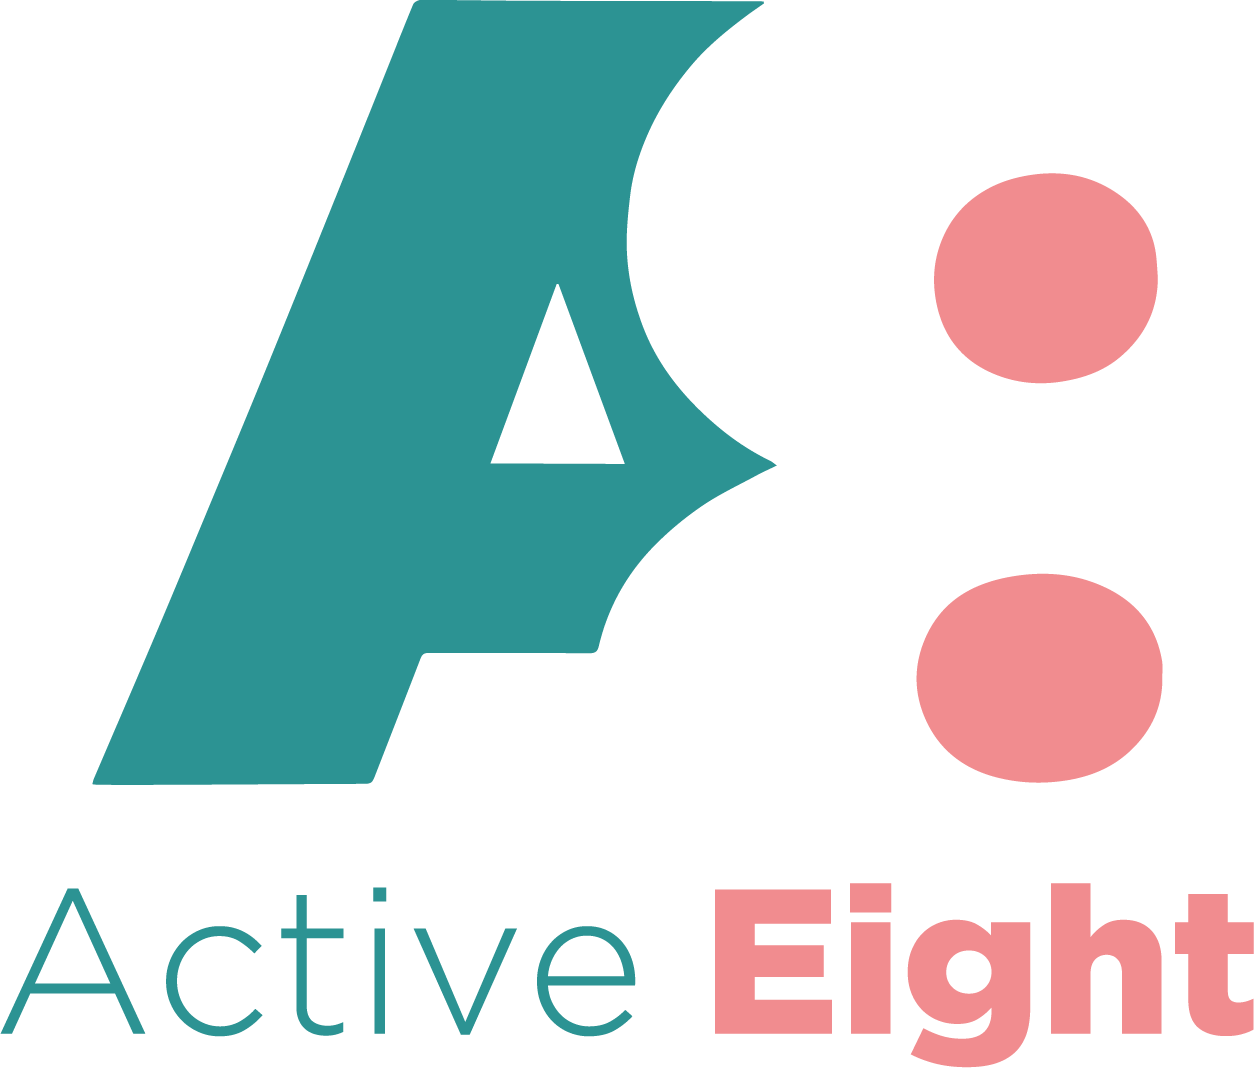 Active Eight